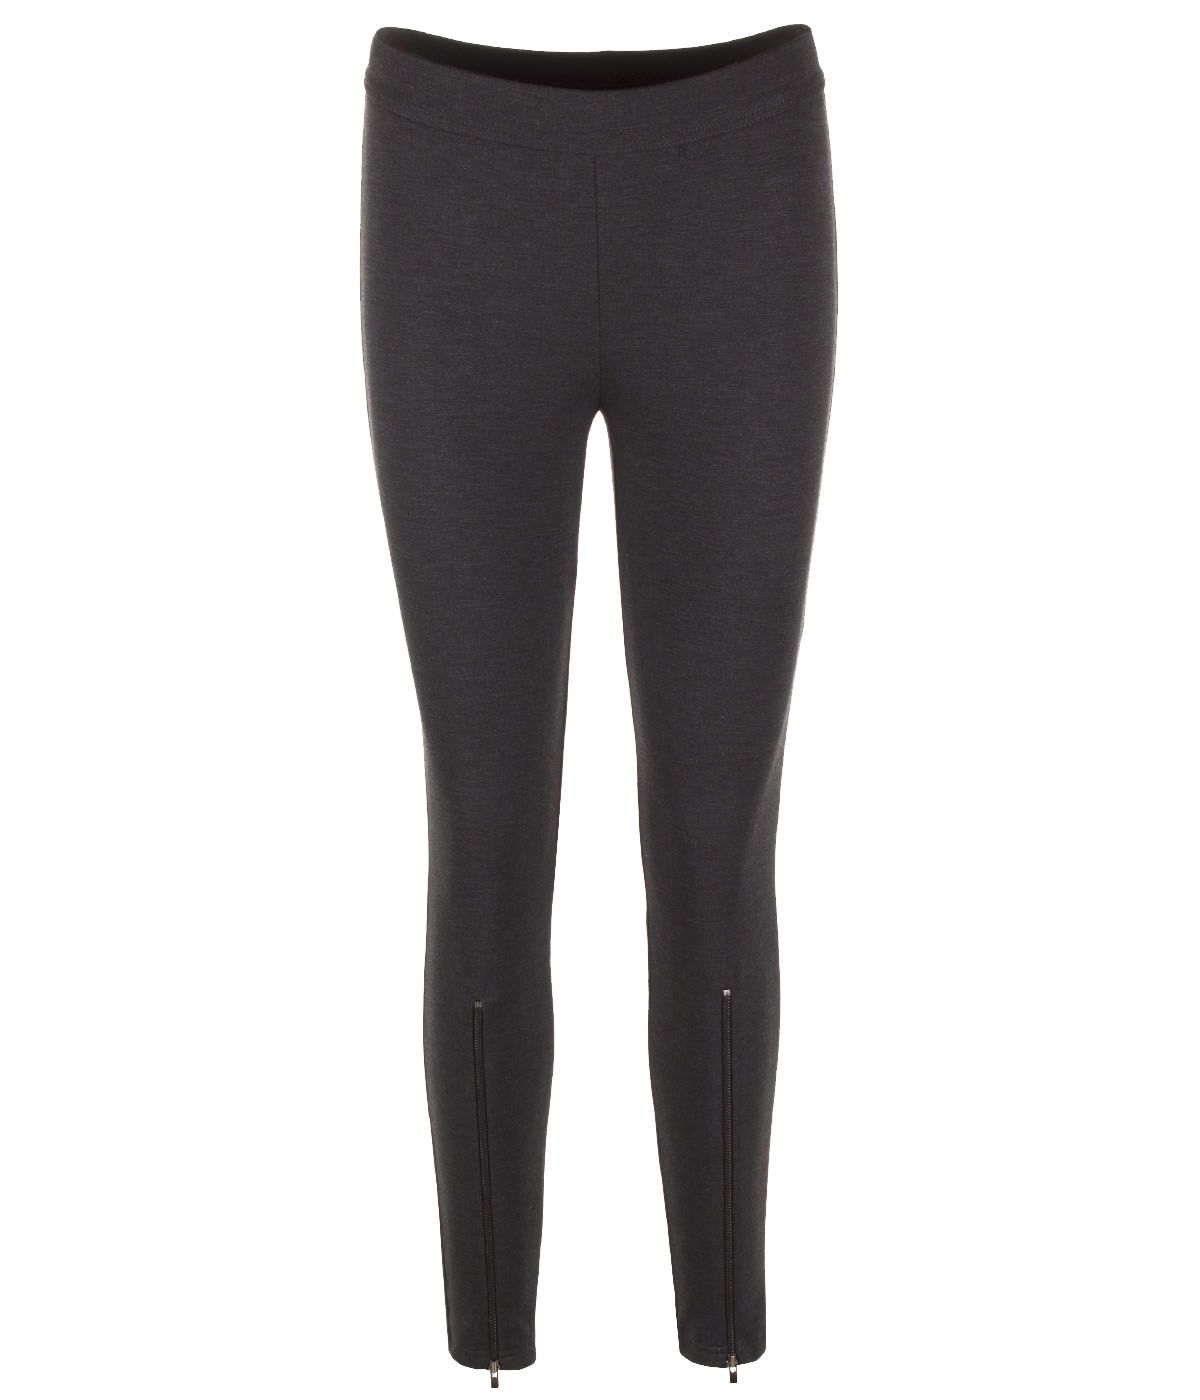 SLIM FIT BLACK LEGGINGS